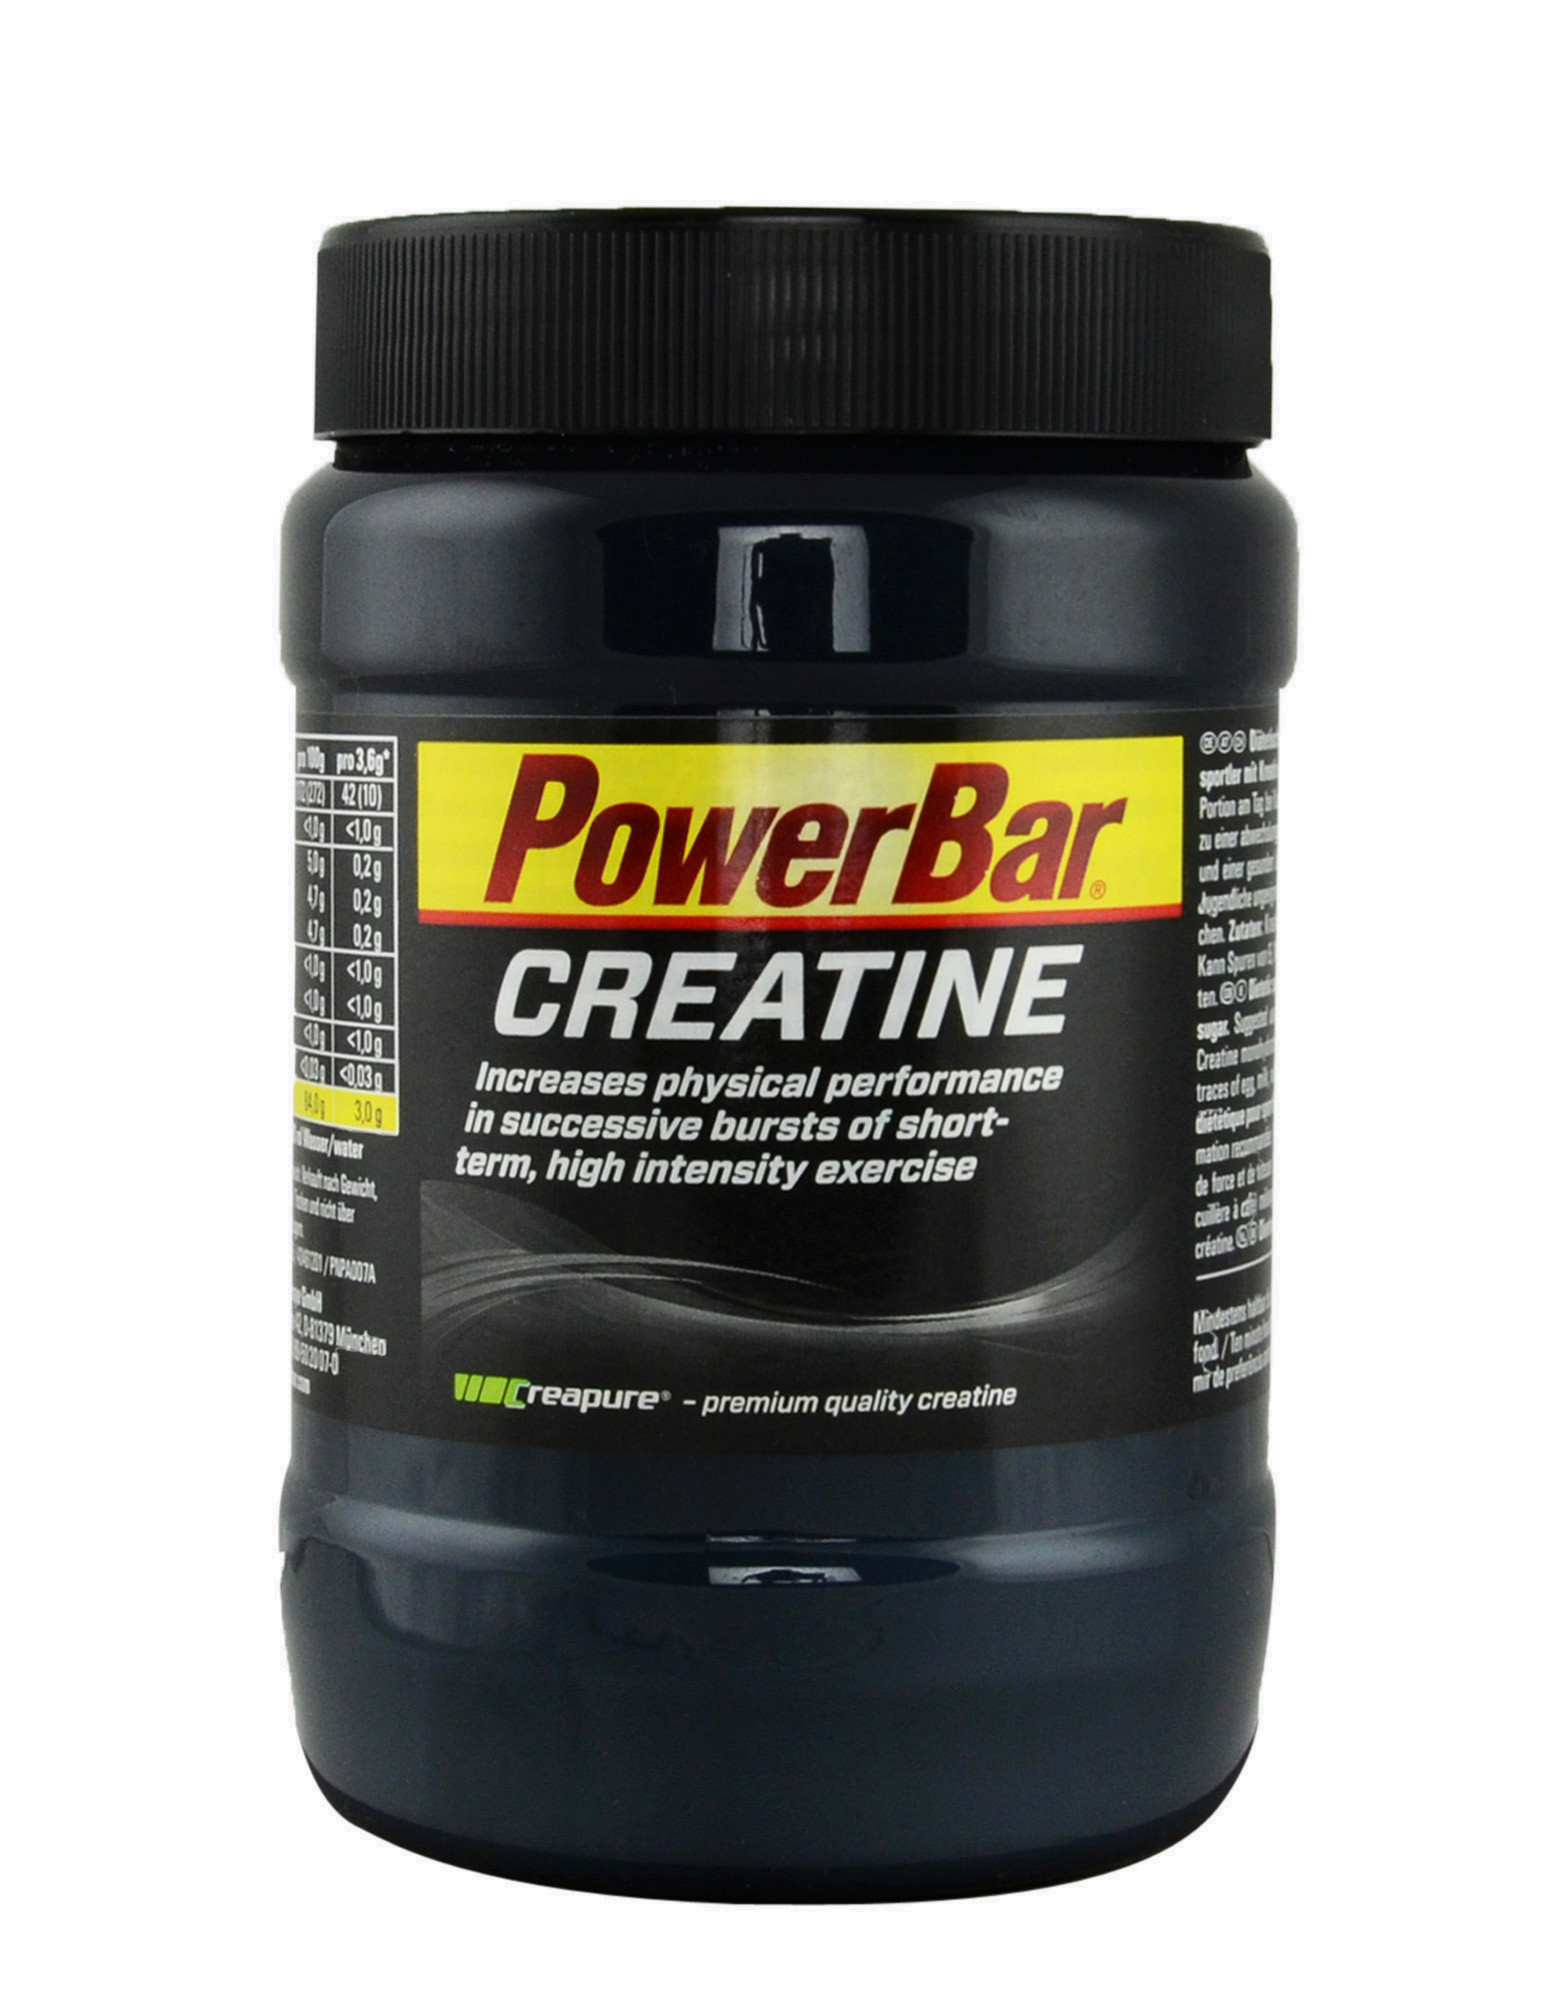 Creatine and sugar